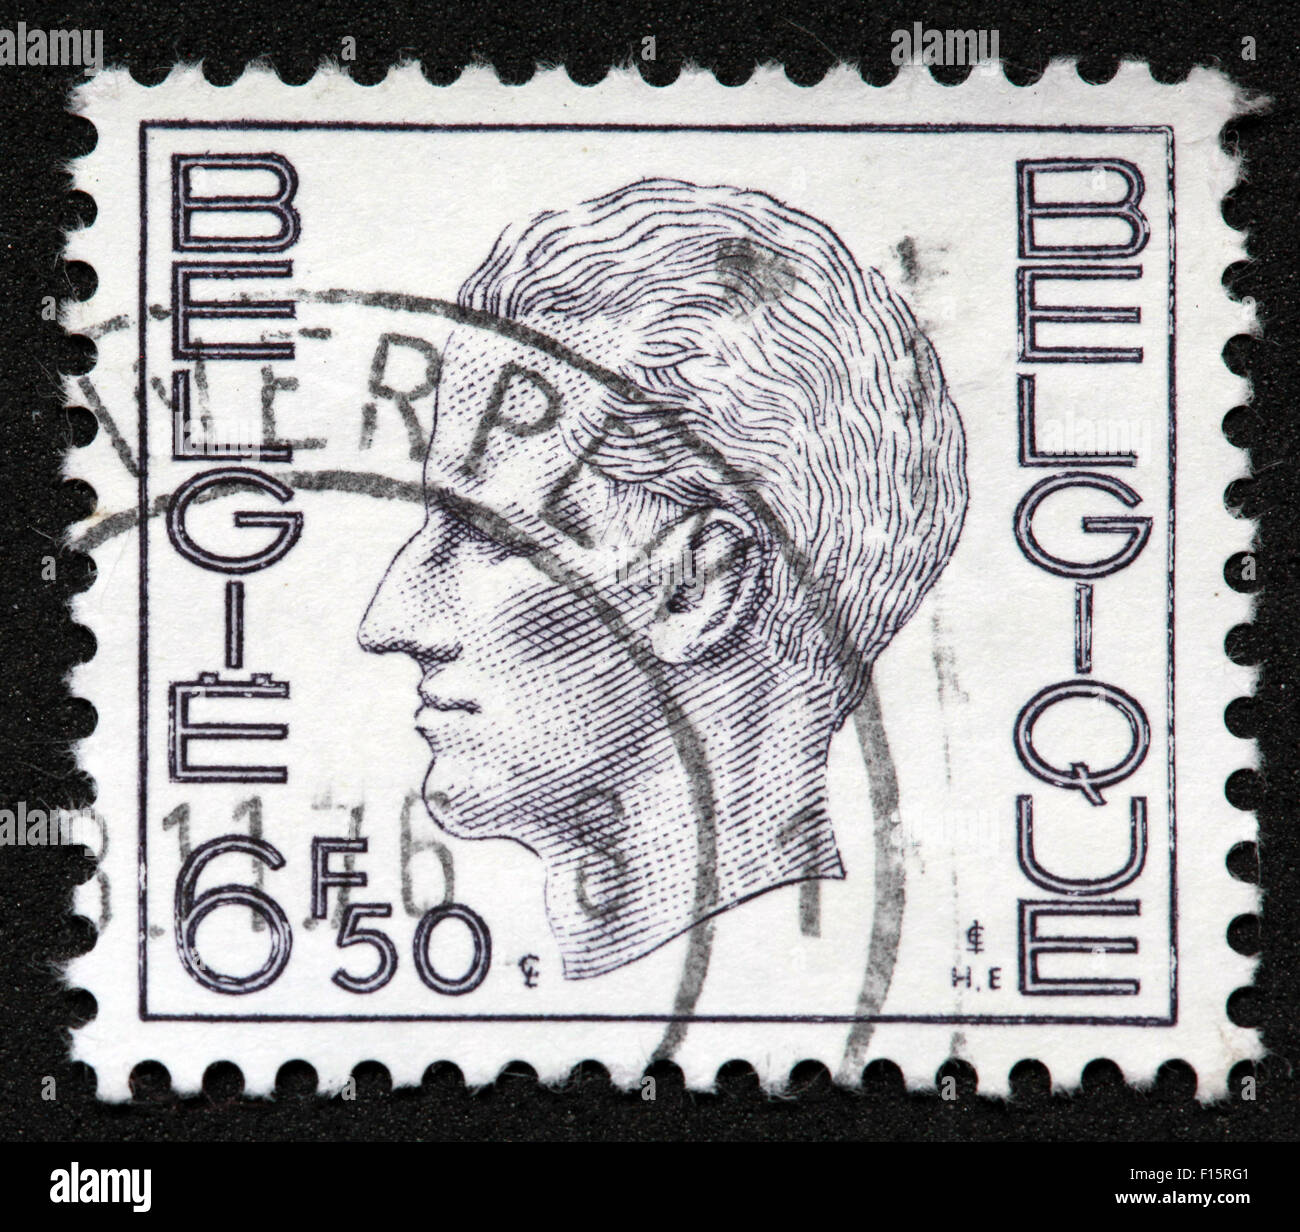 Postes Antwerpen Belgie Belgique 6f50 side head portrait man men stamp white Stock Photo